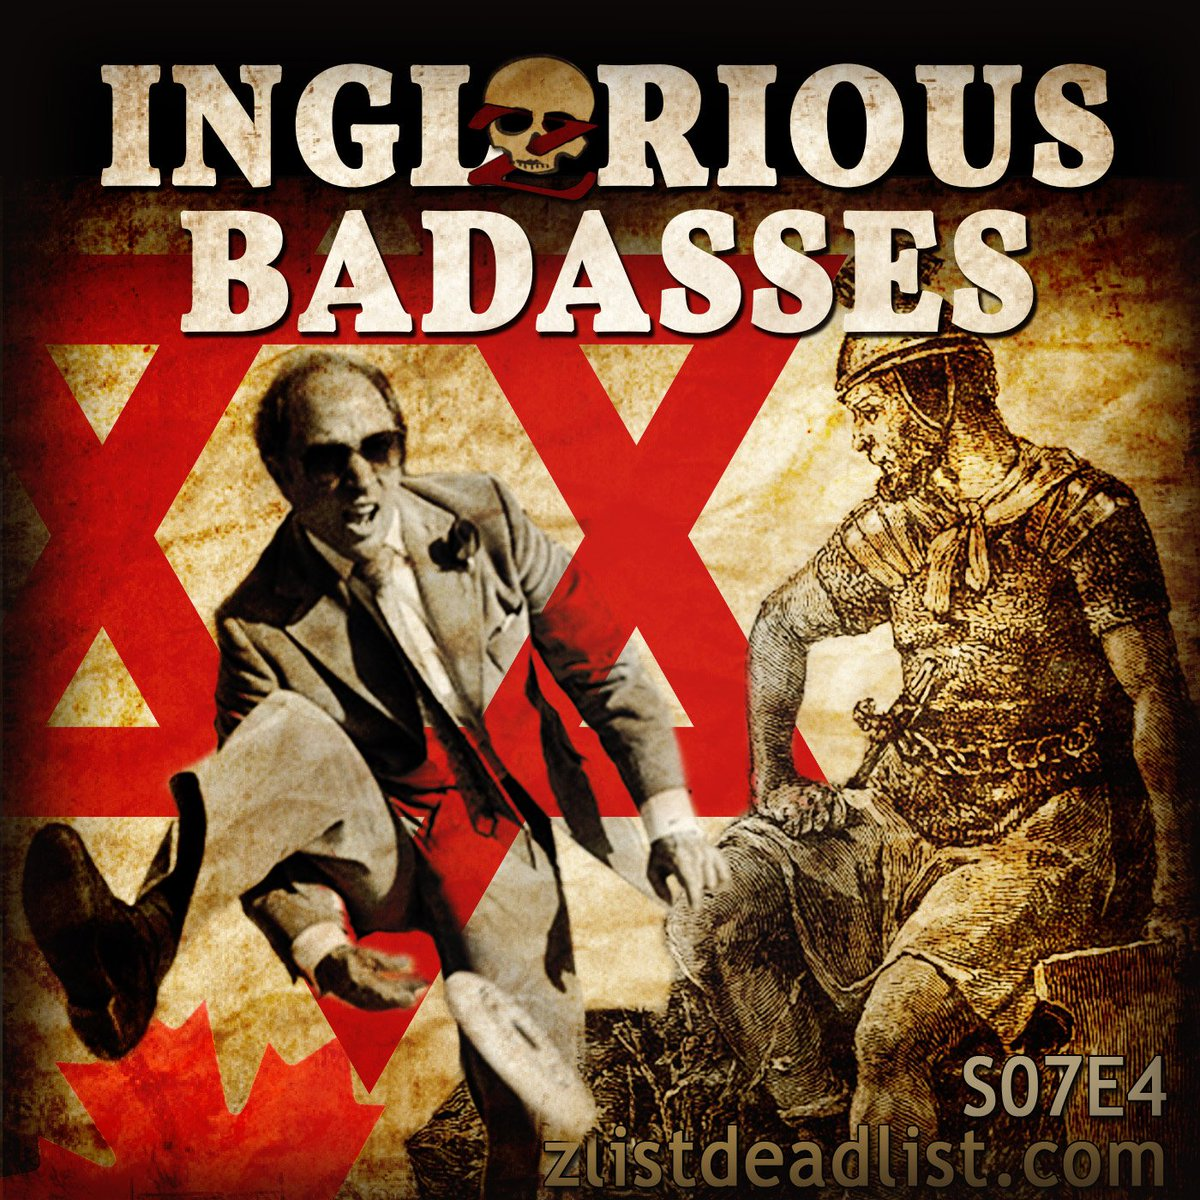 S07E4 Inglorious Badasses with @escarius @petejohansson and @haydencohen https://t.co/hg8Ljb8SE3 #podcast #history https://t.co/AtdVAiK4wX